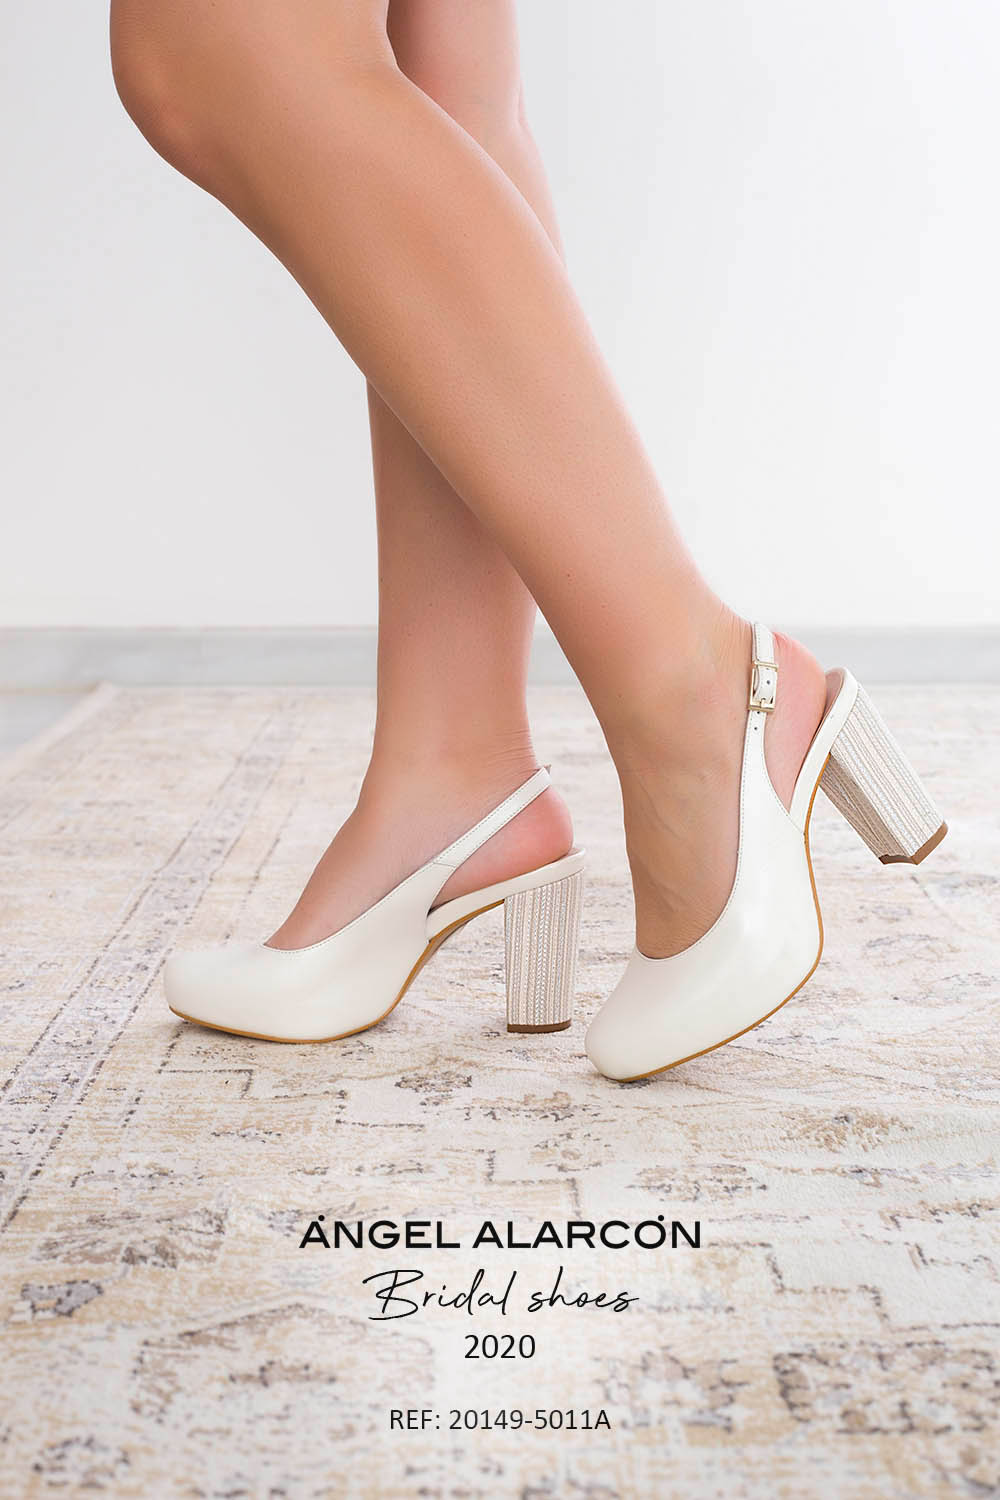 wedding shoes 2020 20149-5011A WHITE B . Comfortable women's wedding shoes by Angel Alarcon